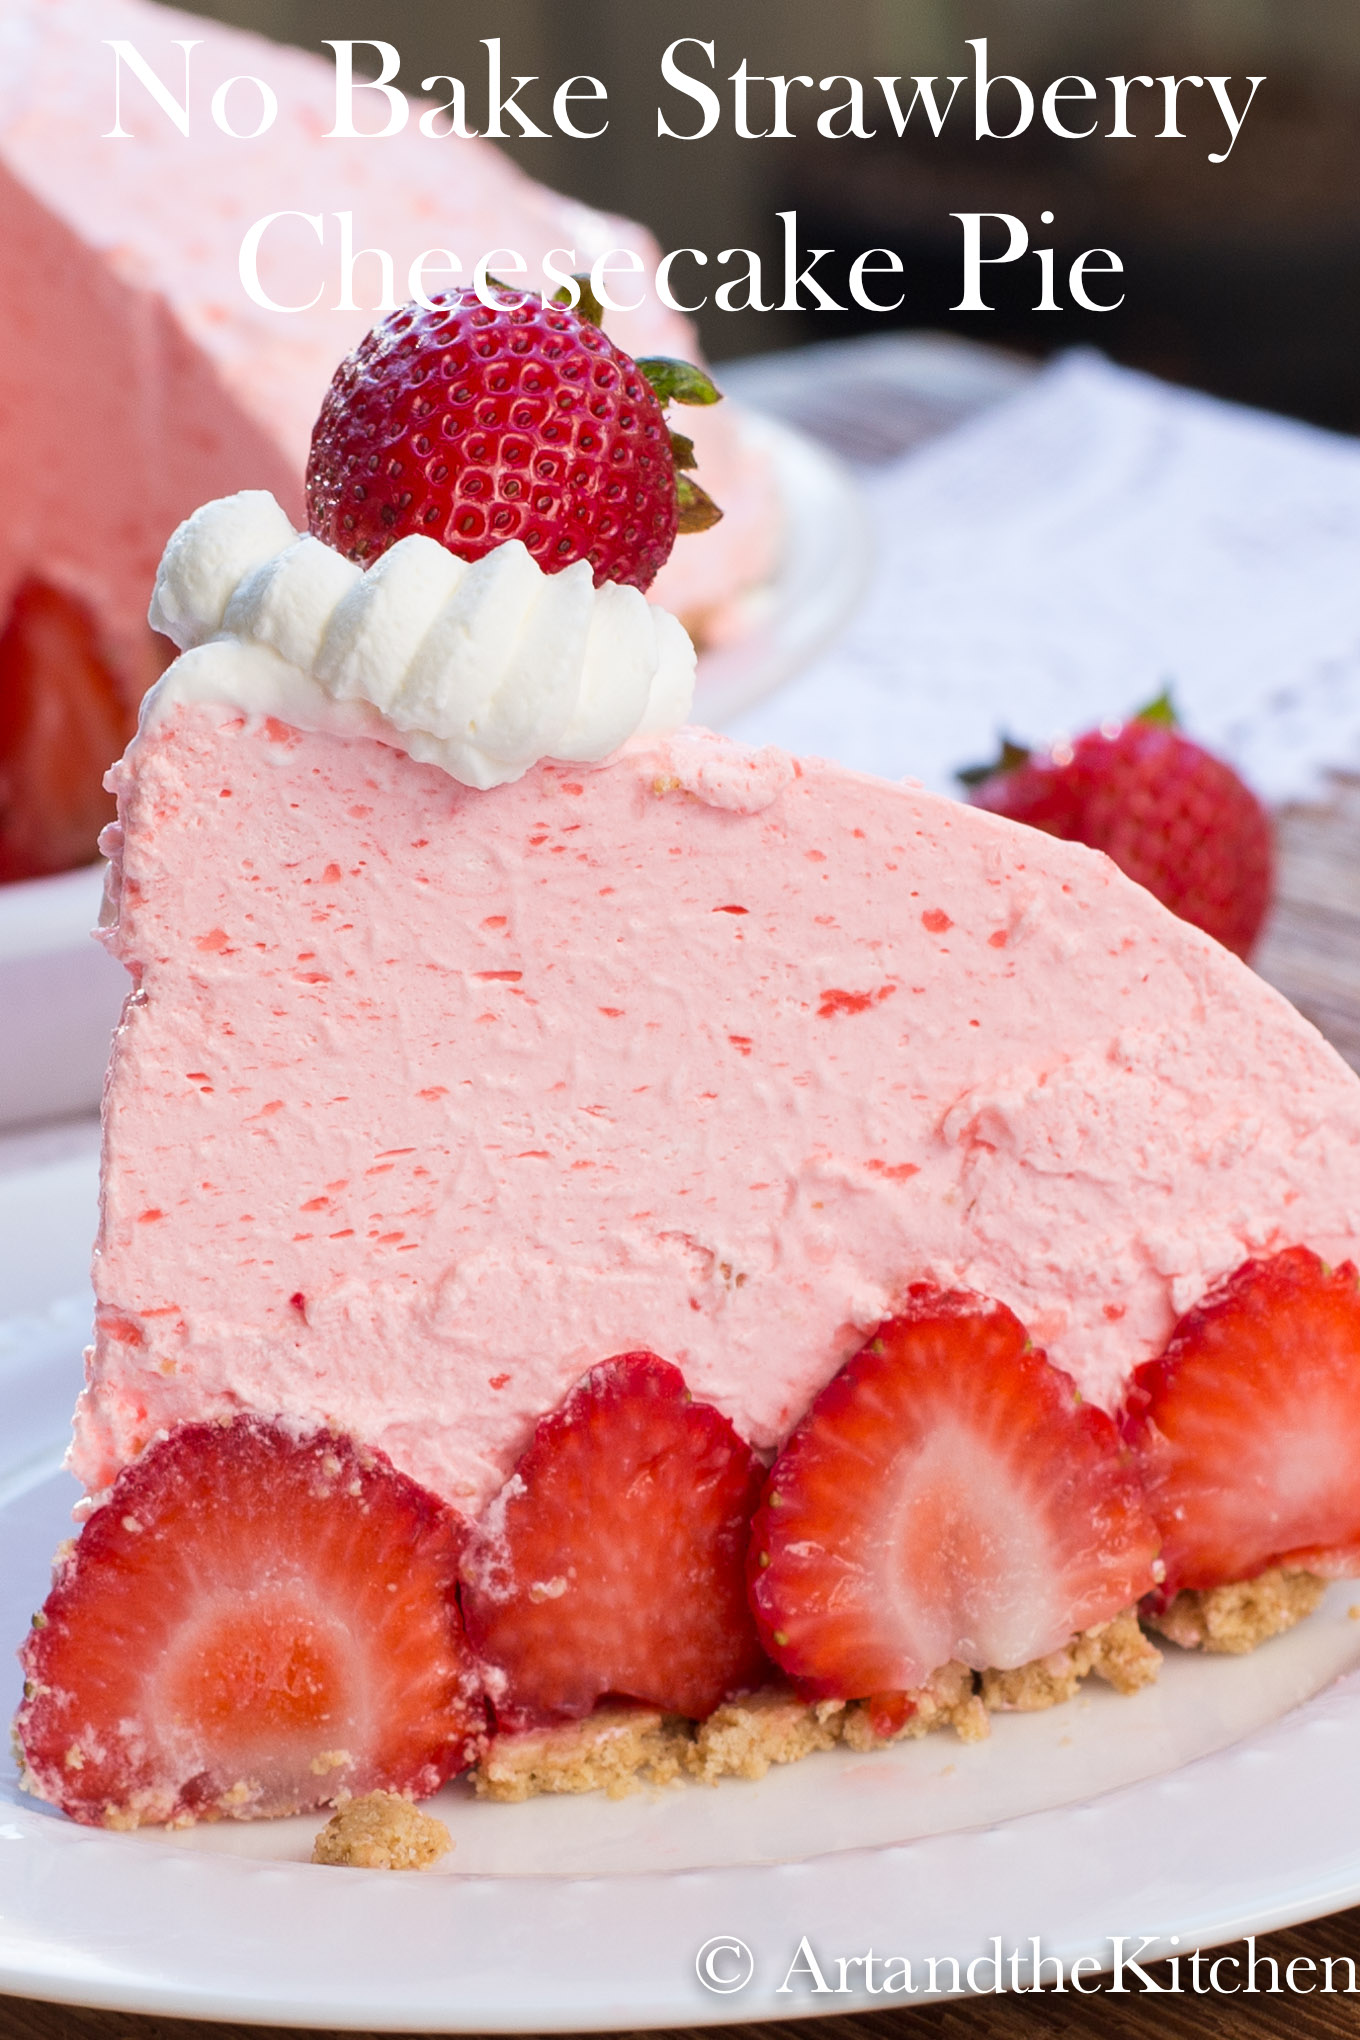 No Bake Strawberry Cheesecake Pie